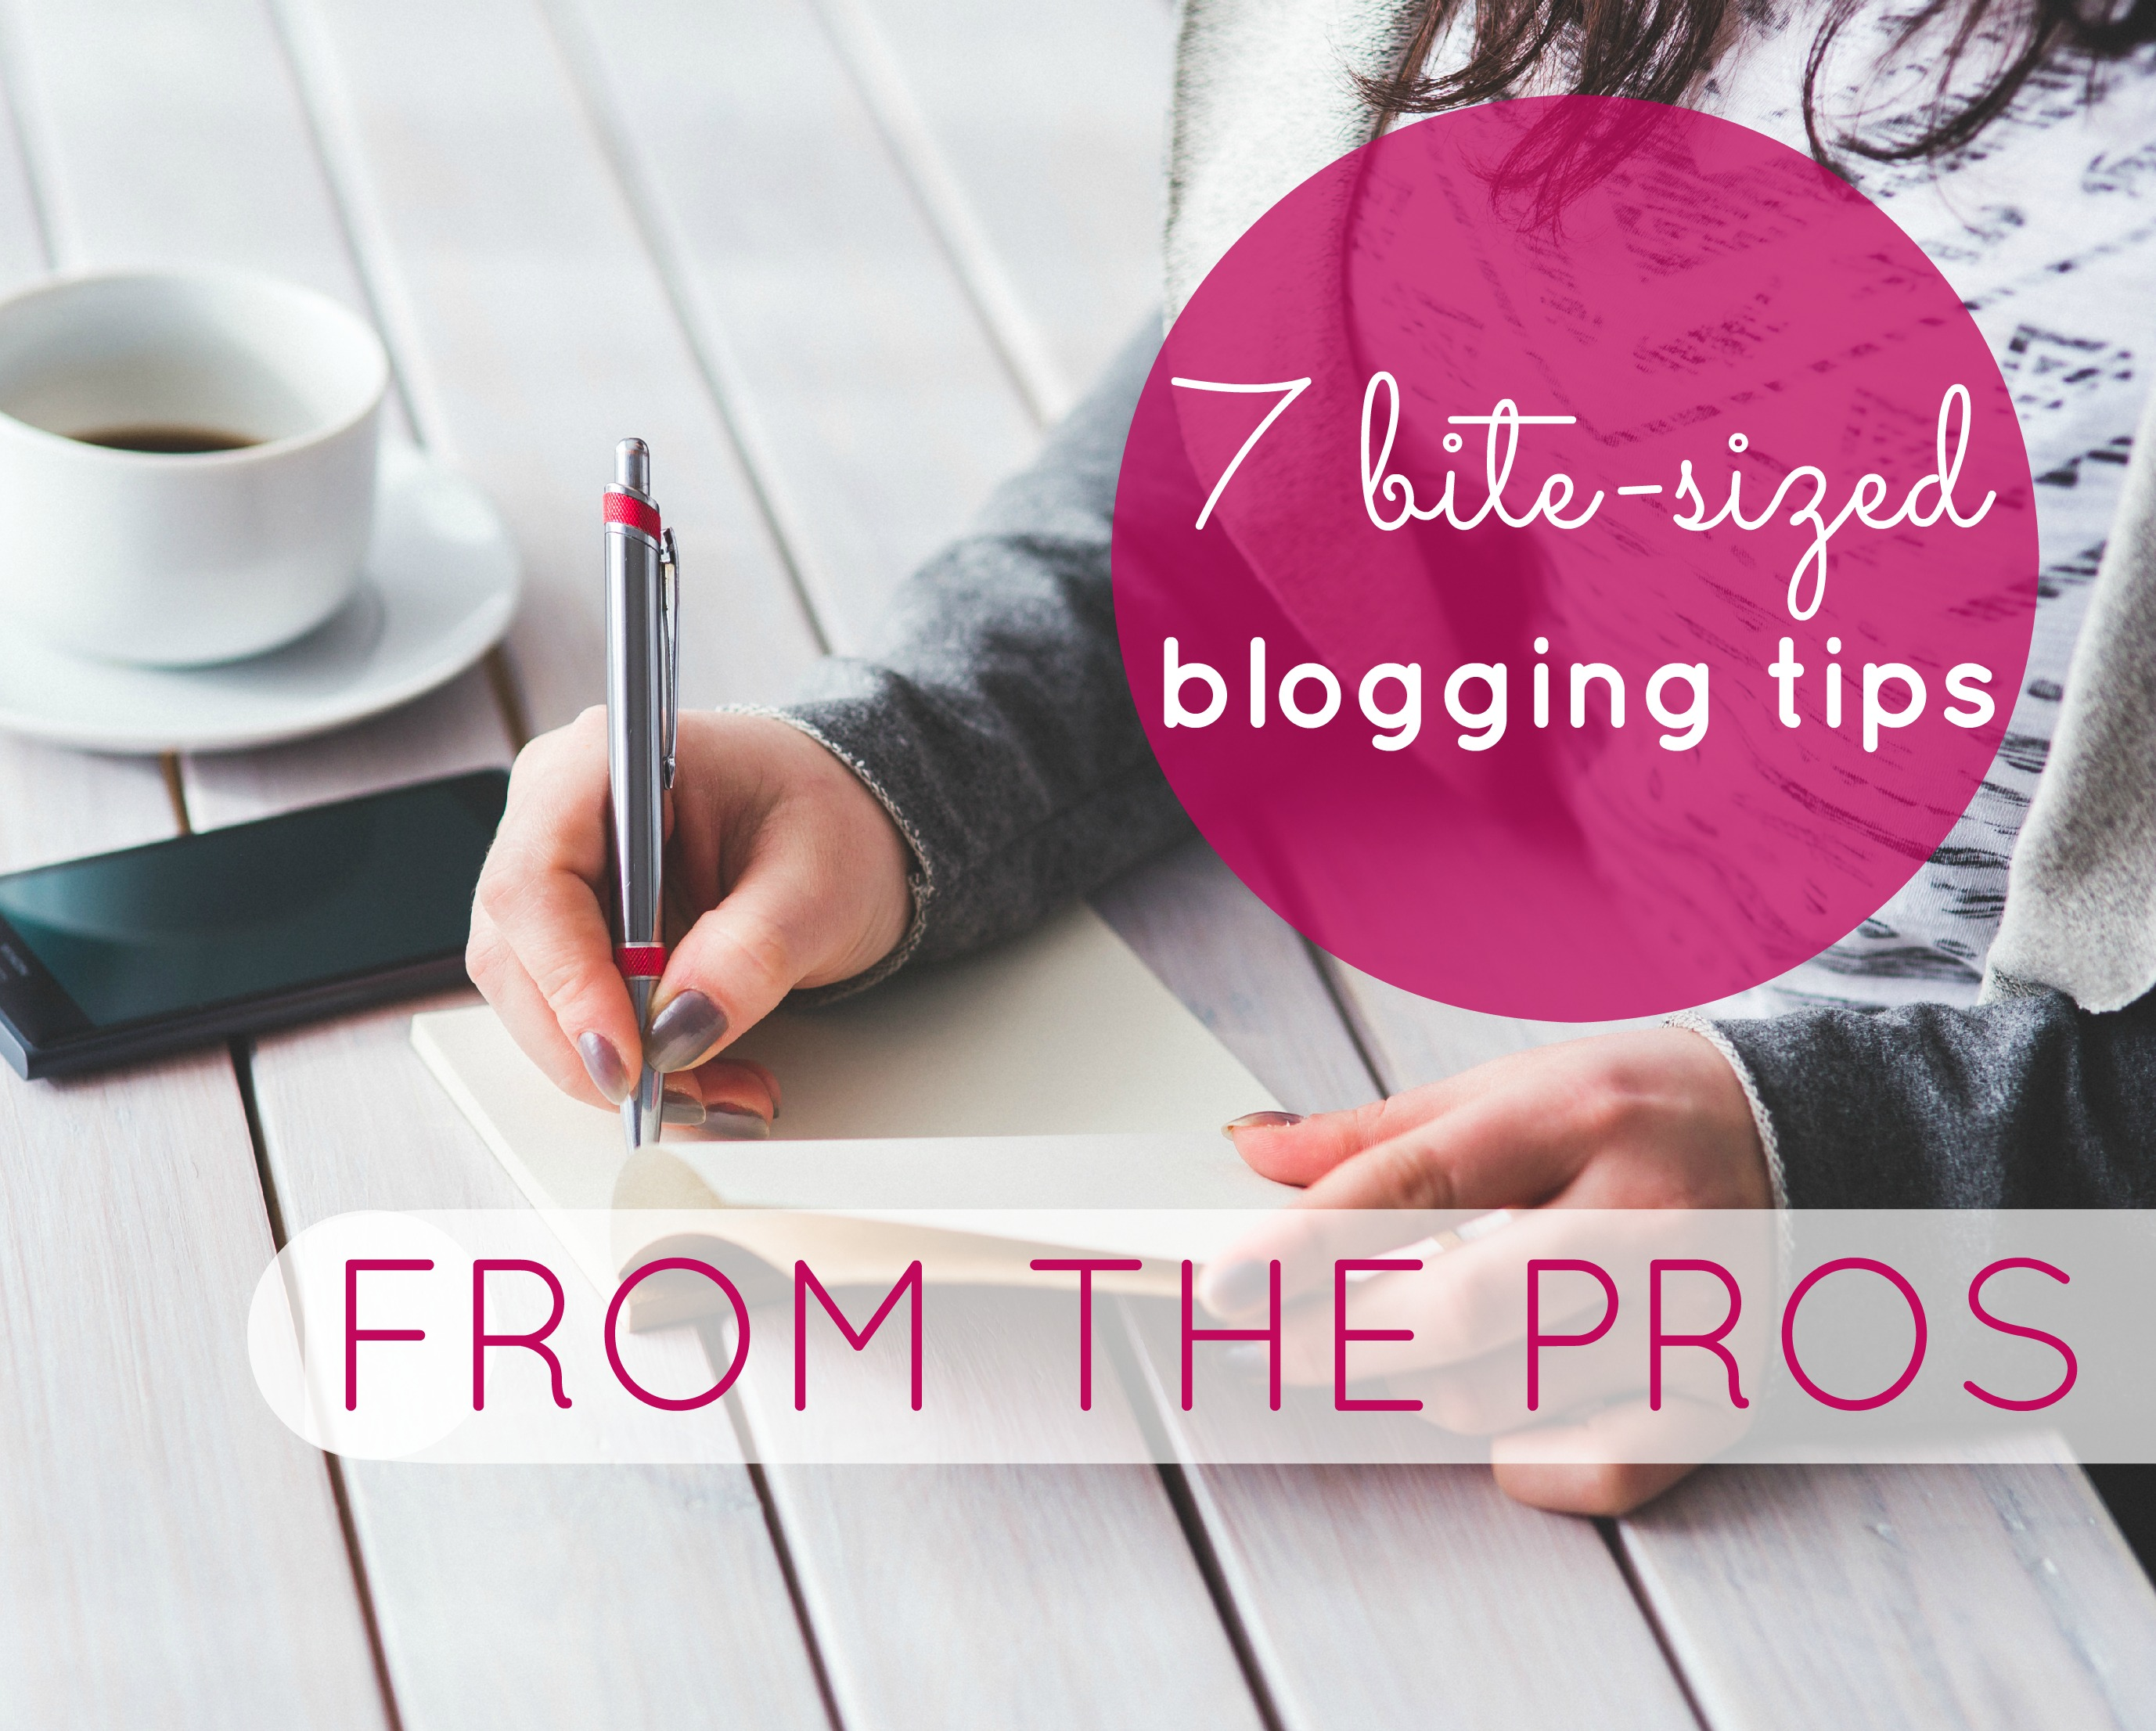 7 bite-sized blogging tips